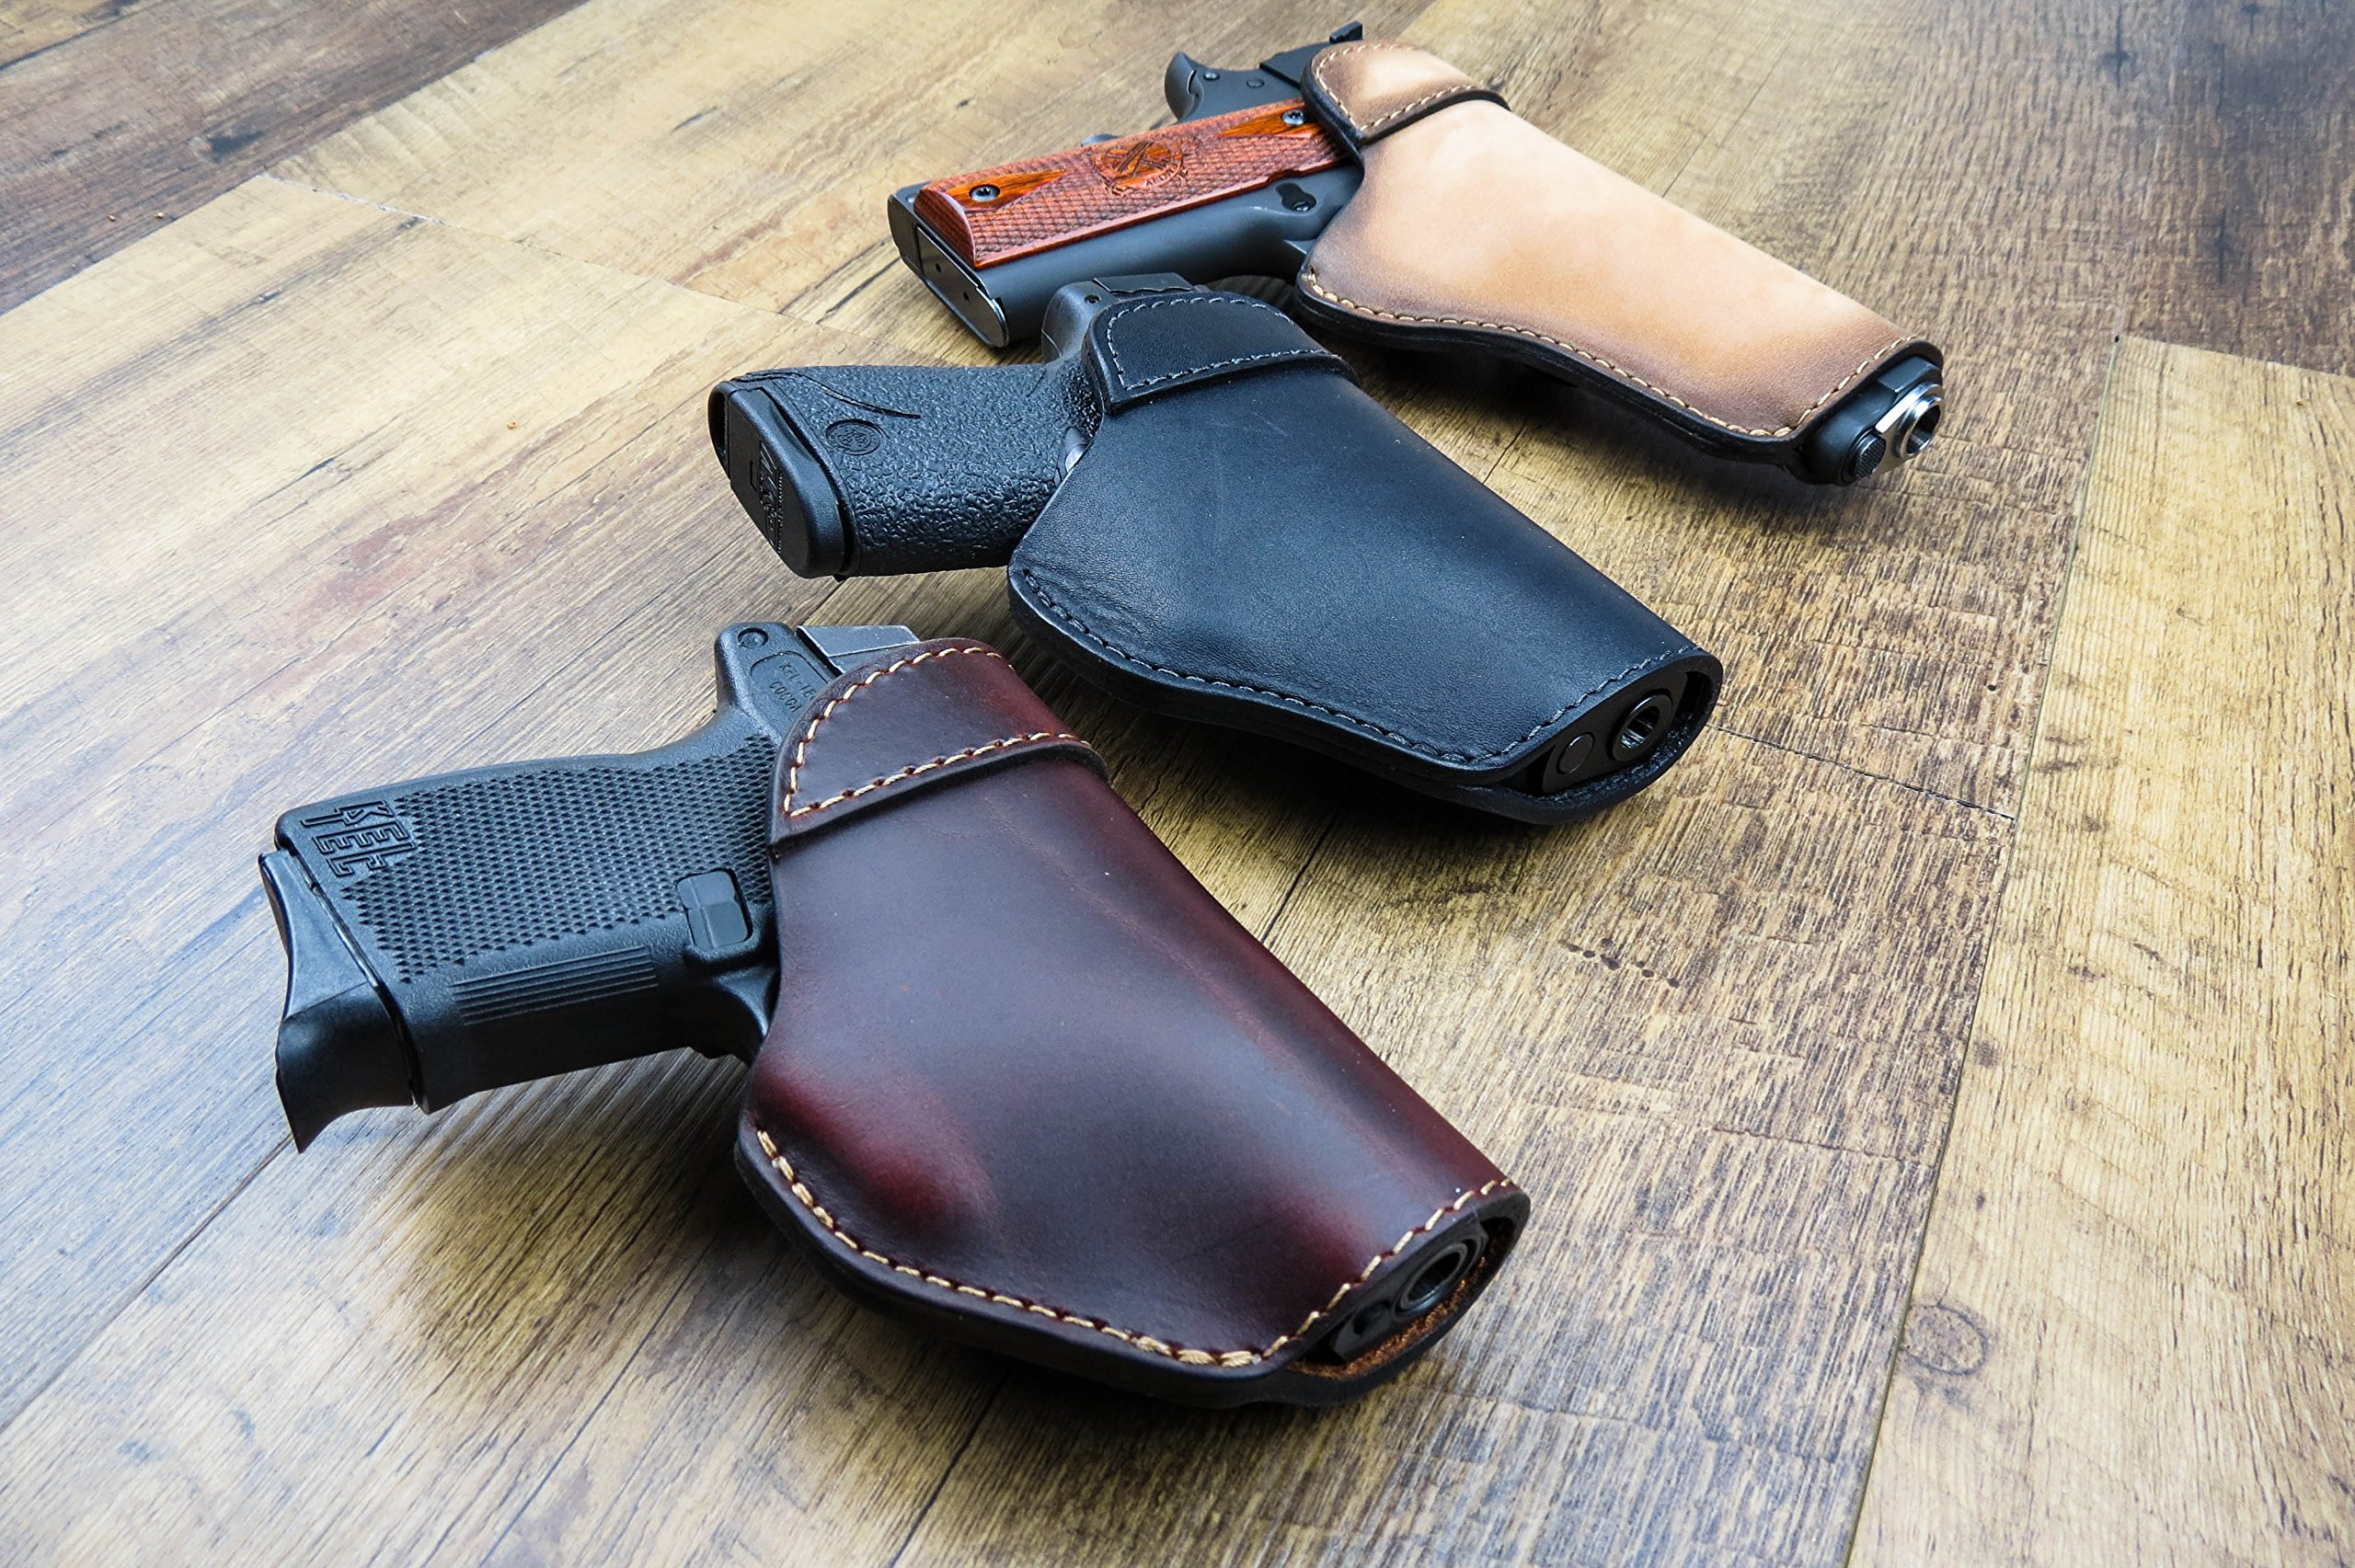 Relentless Tactical The Defender Leather IWB Holster - Made in USA - For S&W M&P Shield - GLOCK 17 19 22 23 32 33/Springfield XD & XDS/Plus All Similar Sized Handguns – Charred Oak – Right Handed by Relentless Tactical (Image #7)